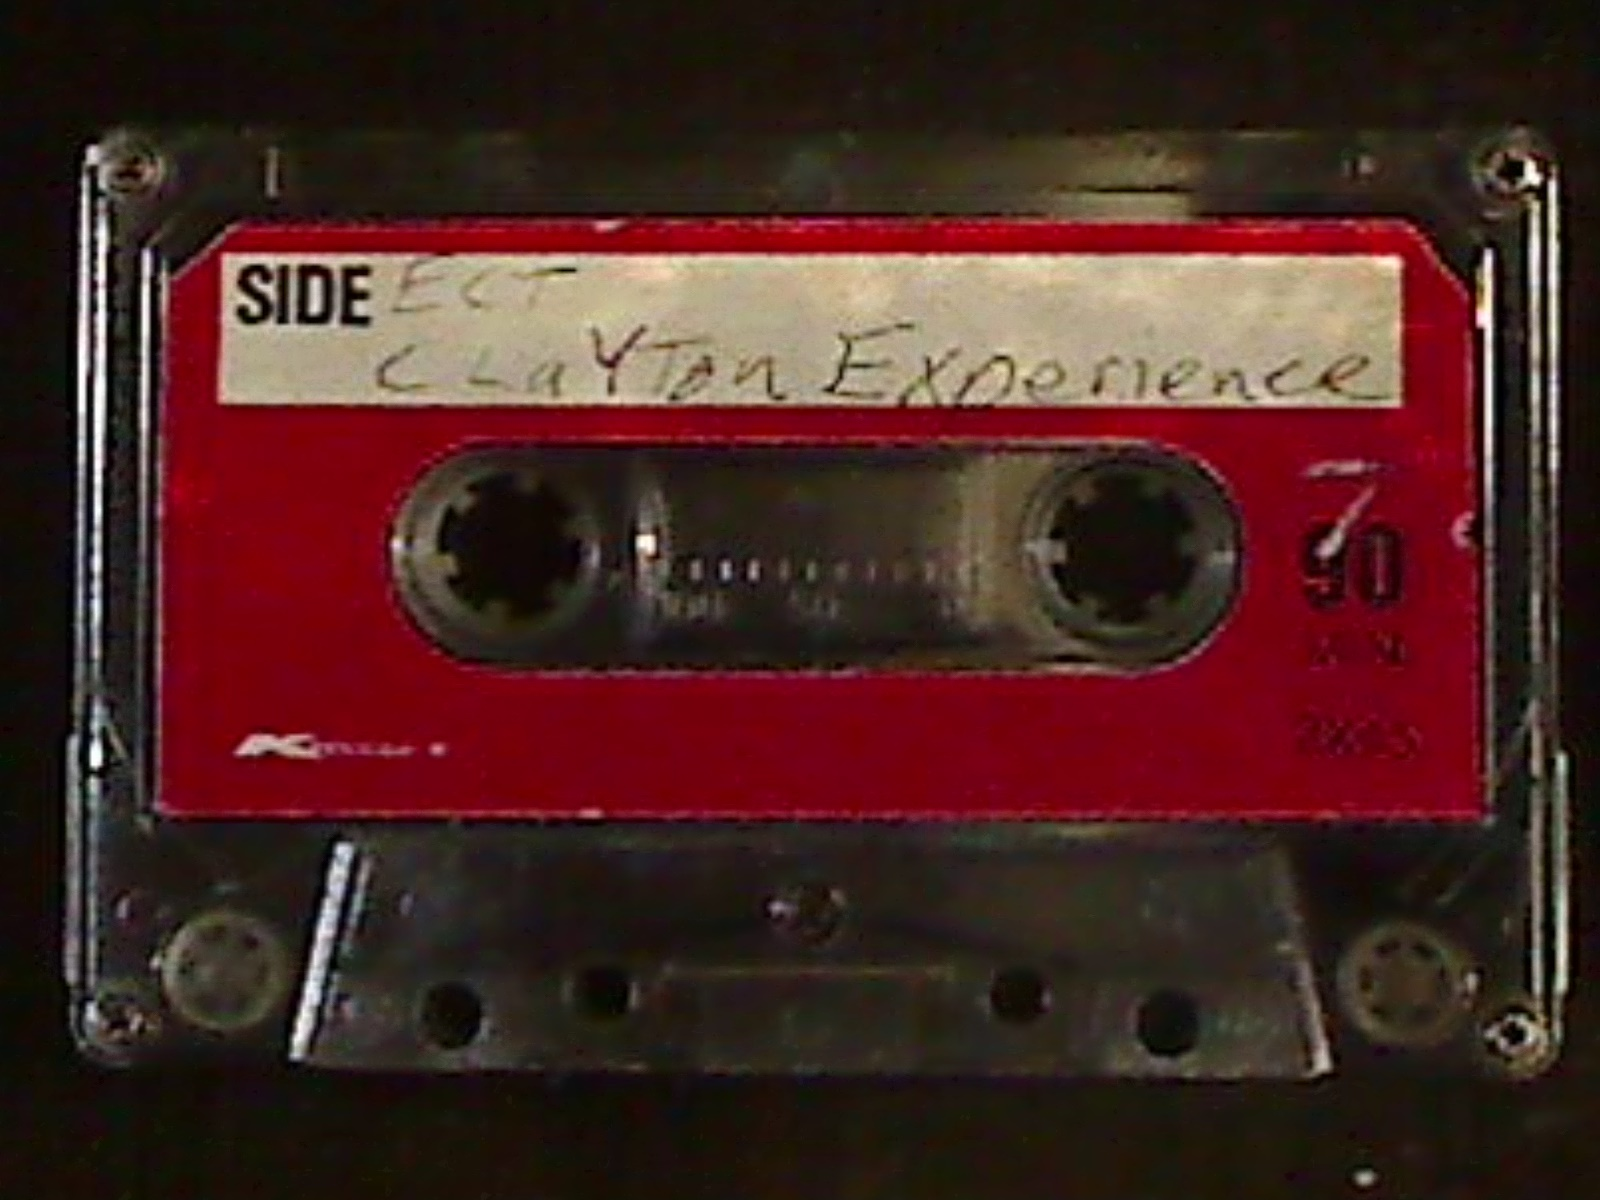 1983 - ECT Clayton Experience